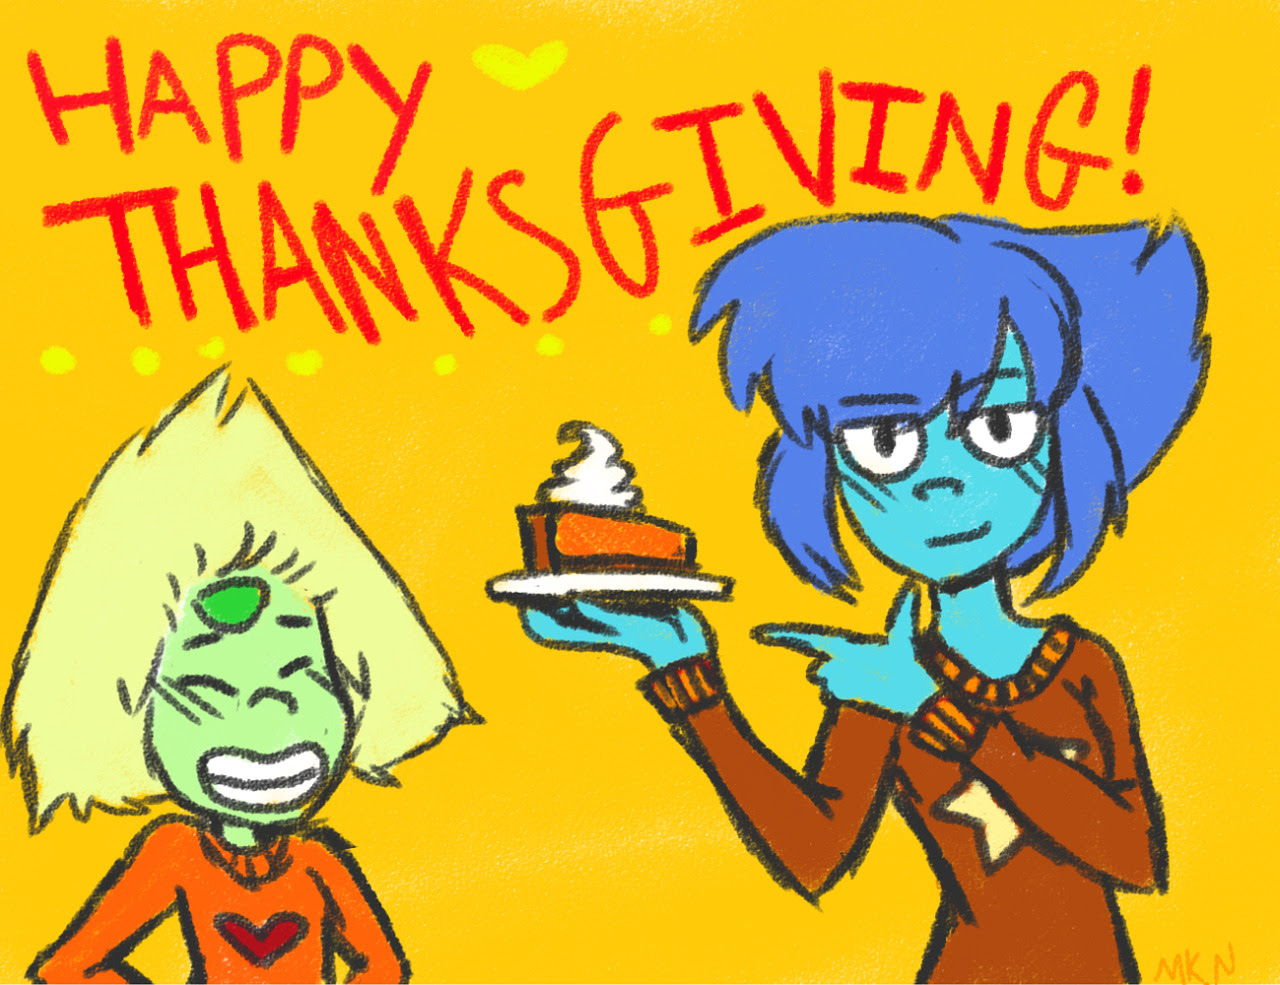 Happy Thanksgiving, ft. everyone's favorite lesbian farmers. Stay safe everyone, and have a great day!